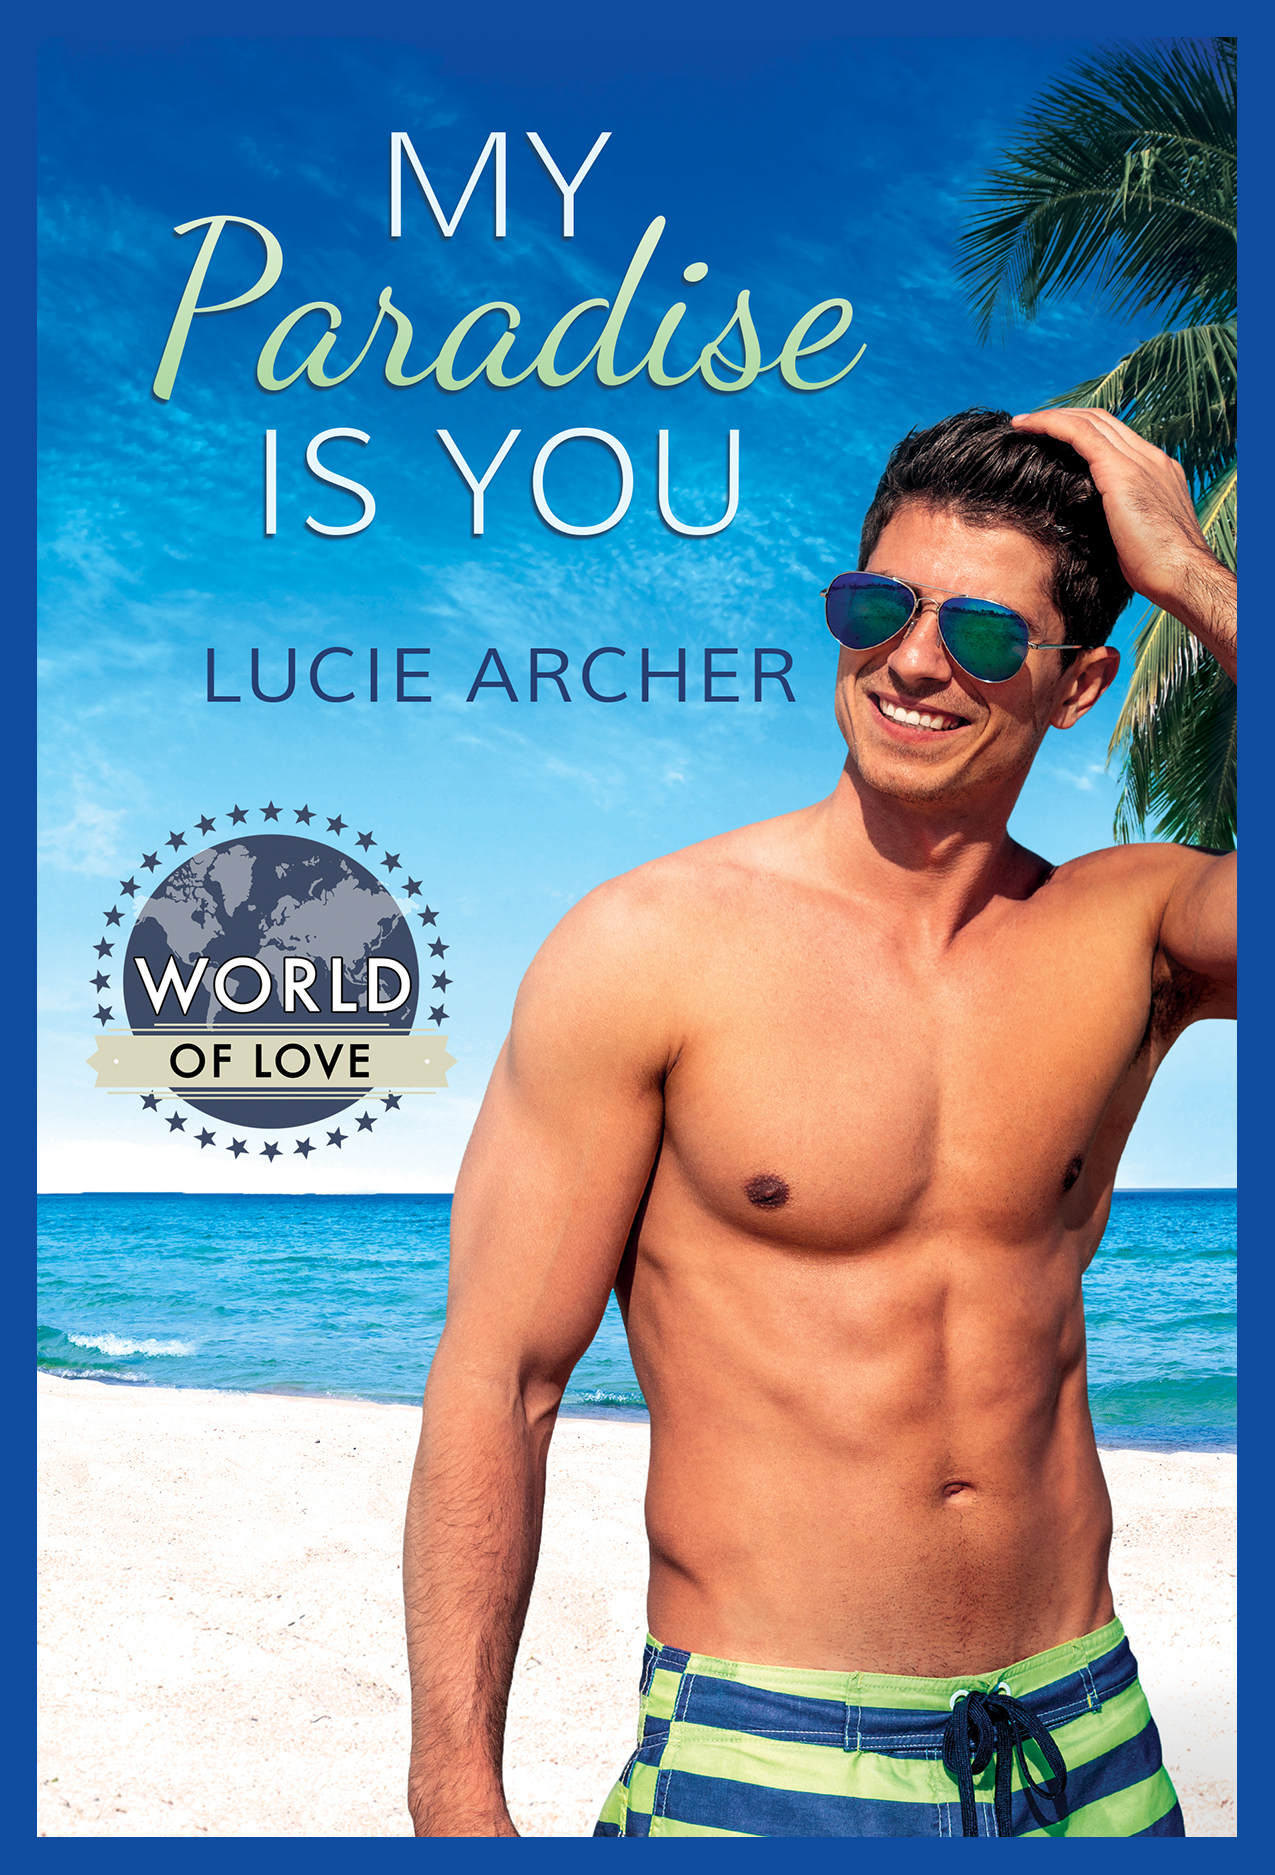 My Paradise Is You by Lucie Archer